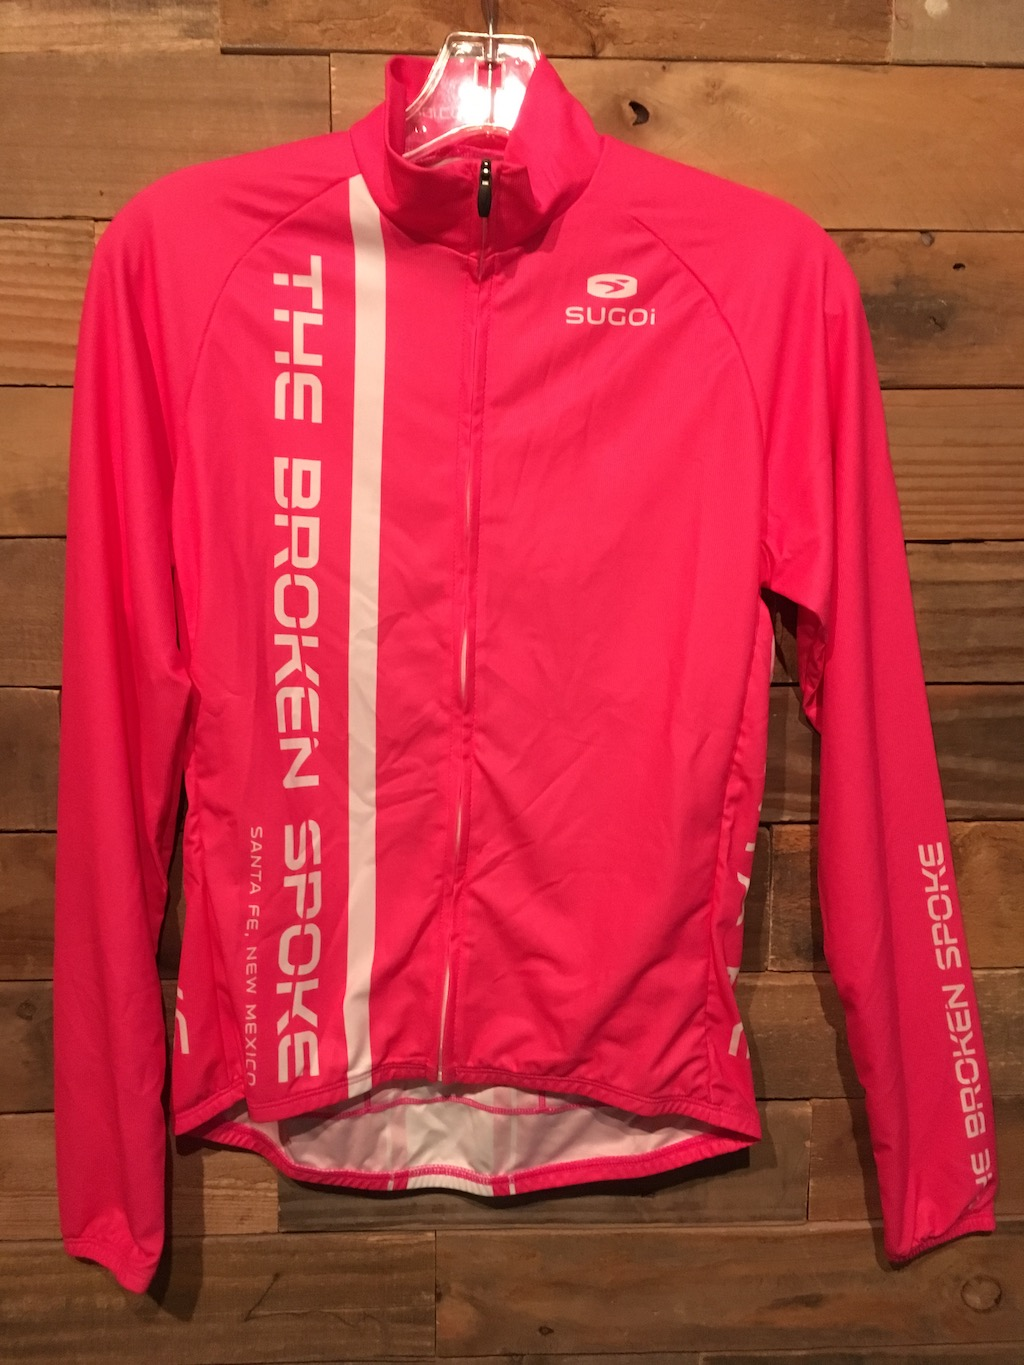 Sugoi Broken Spoke Long Sleeve Pink Jersey Women's